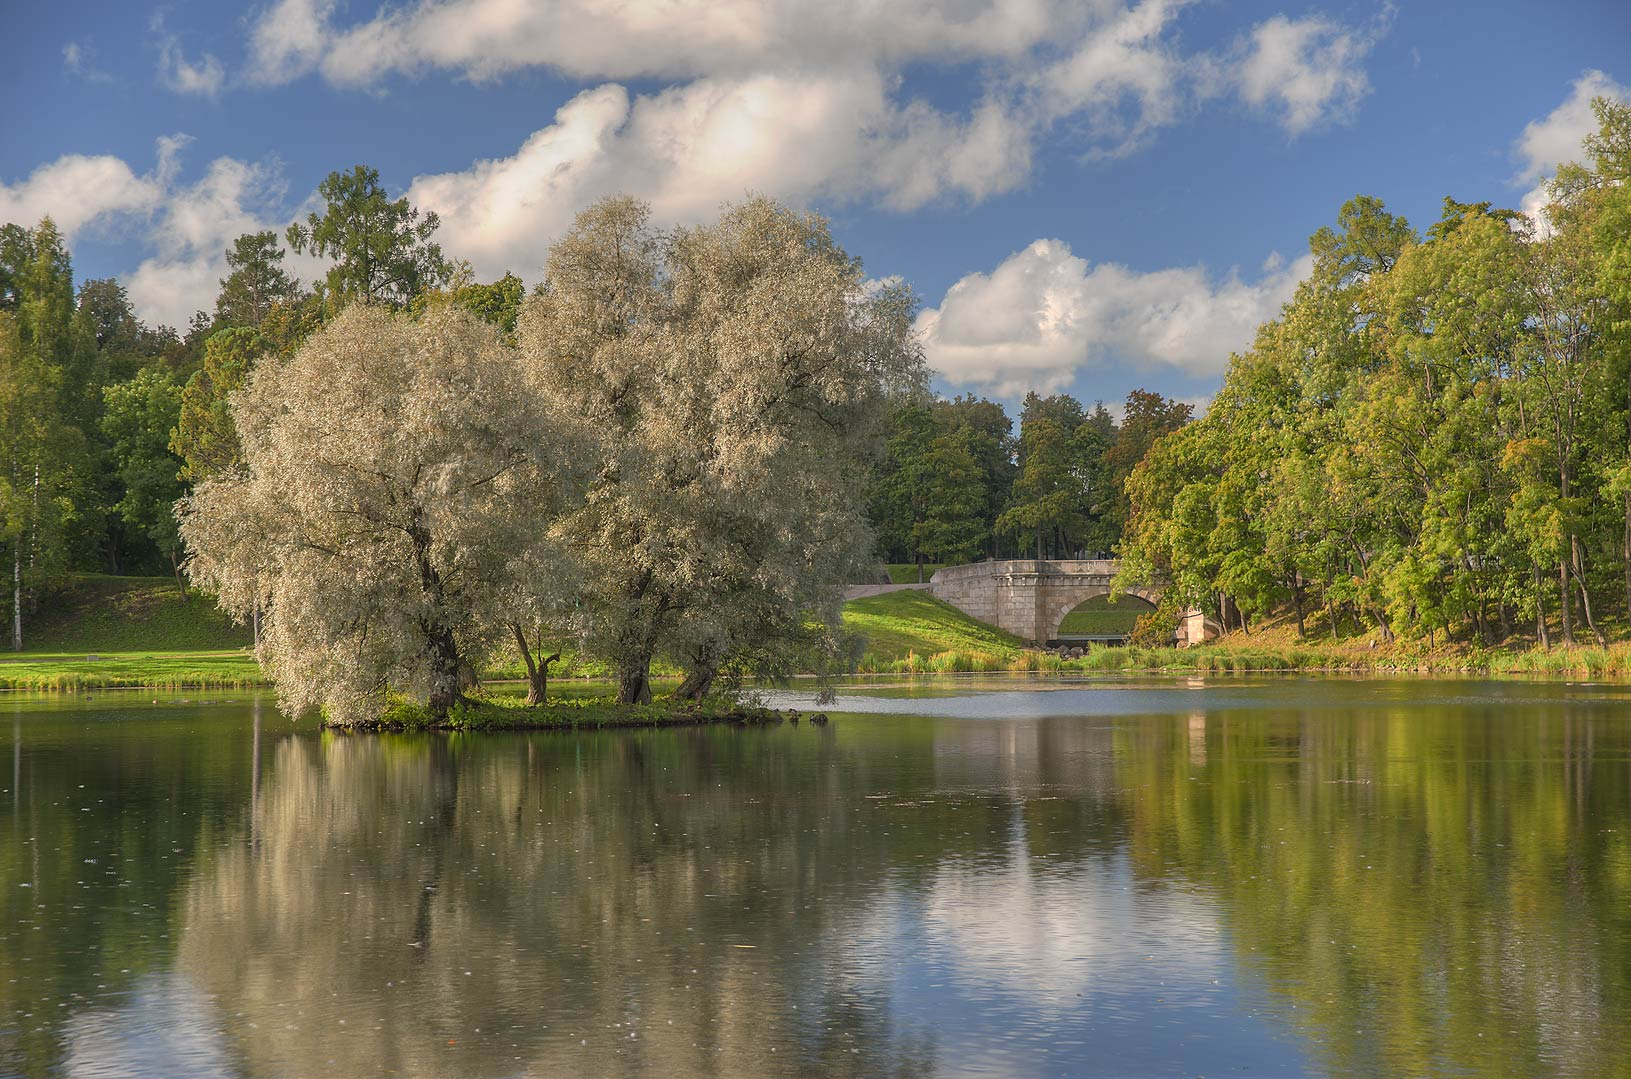 Swan Island in Beloe Lake in Gatchina Park. Gatchina, a suburb of St.Petersburg, Russia